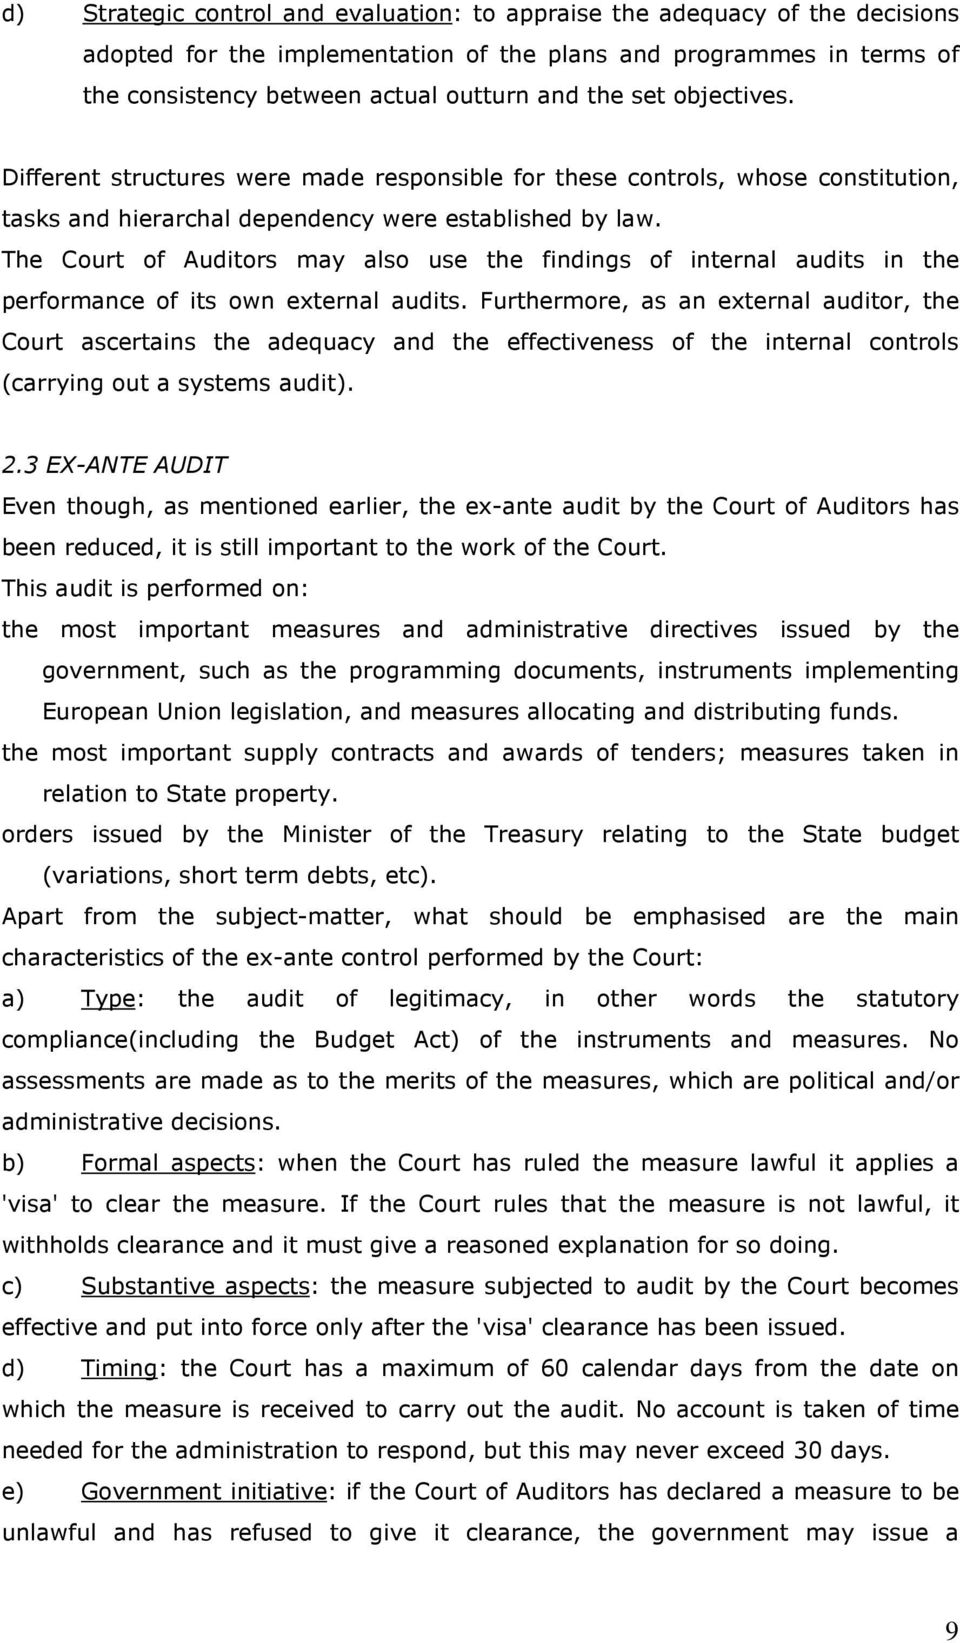 The Court of Auditors may also use the findings of internal audits in the performance of its own external audits.